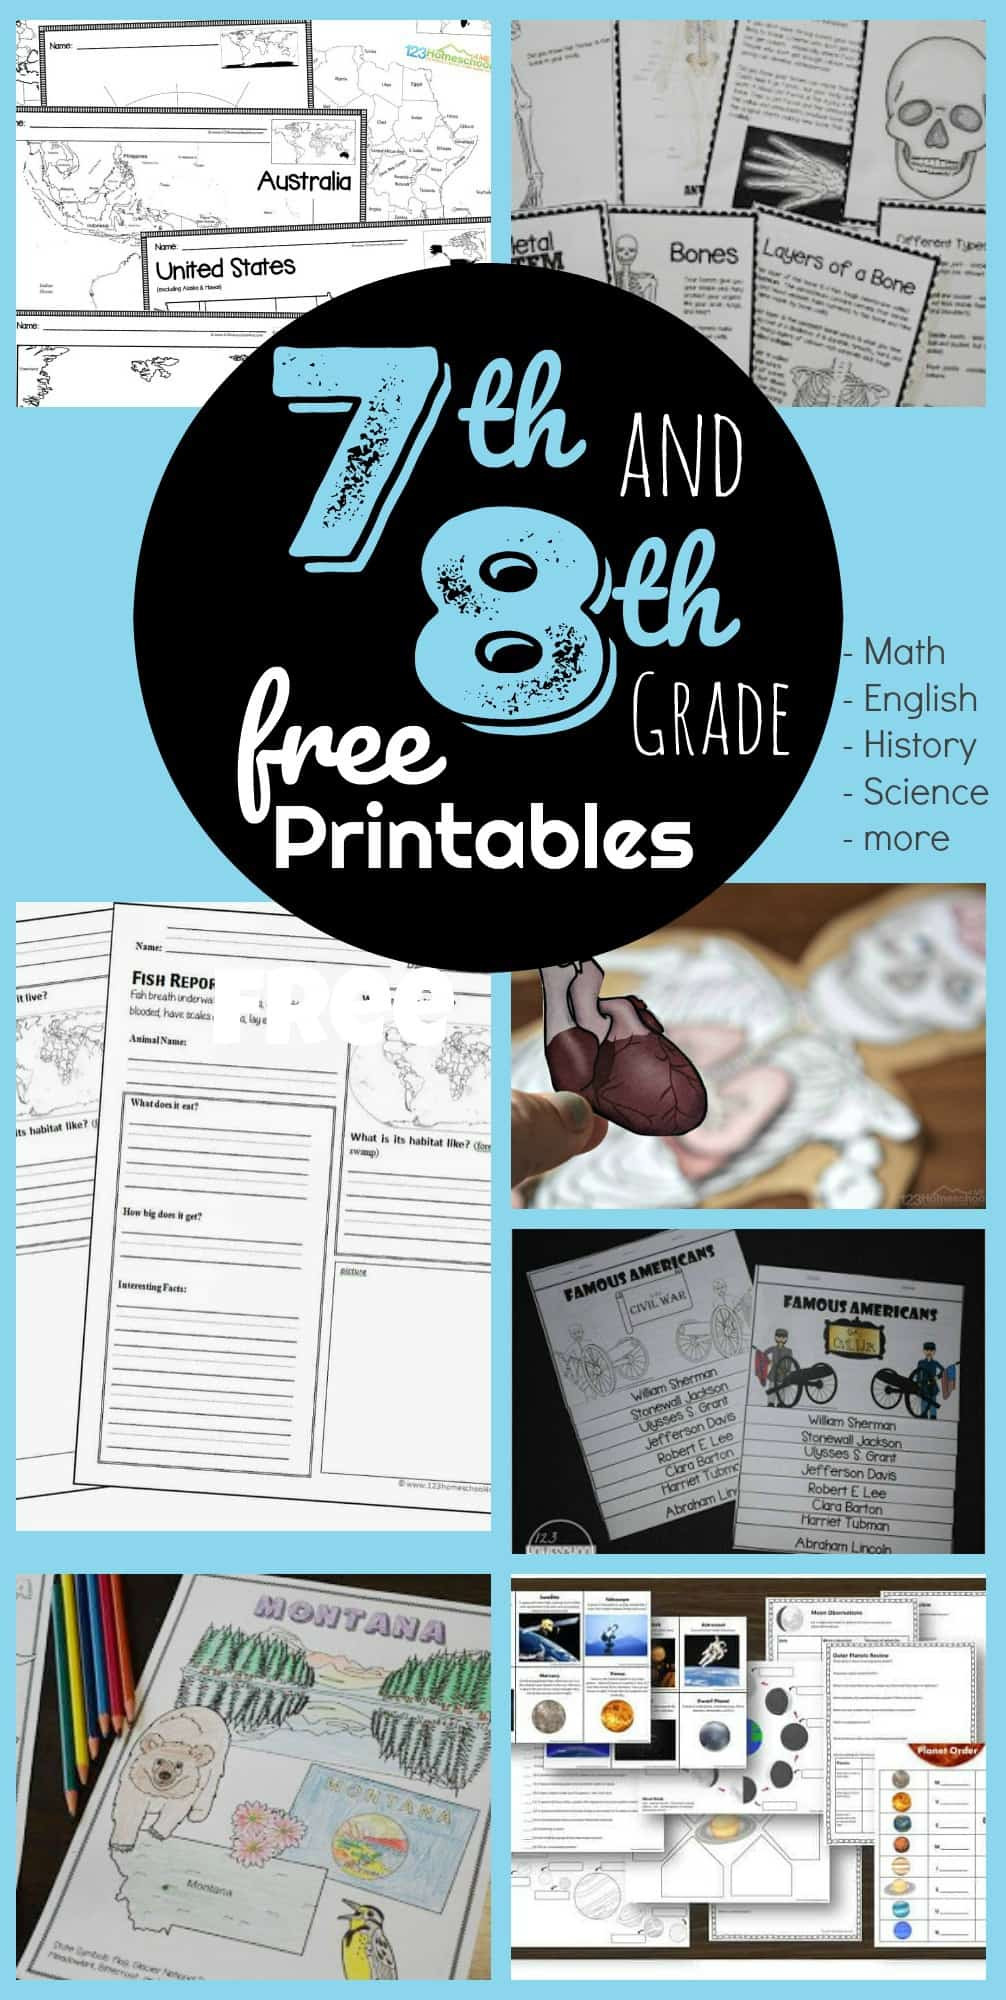 Seventh Grade Science Worksheets Free 7th & 8th Grade Worksheets